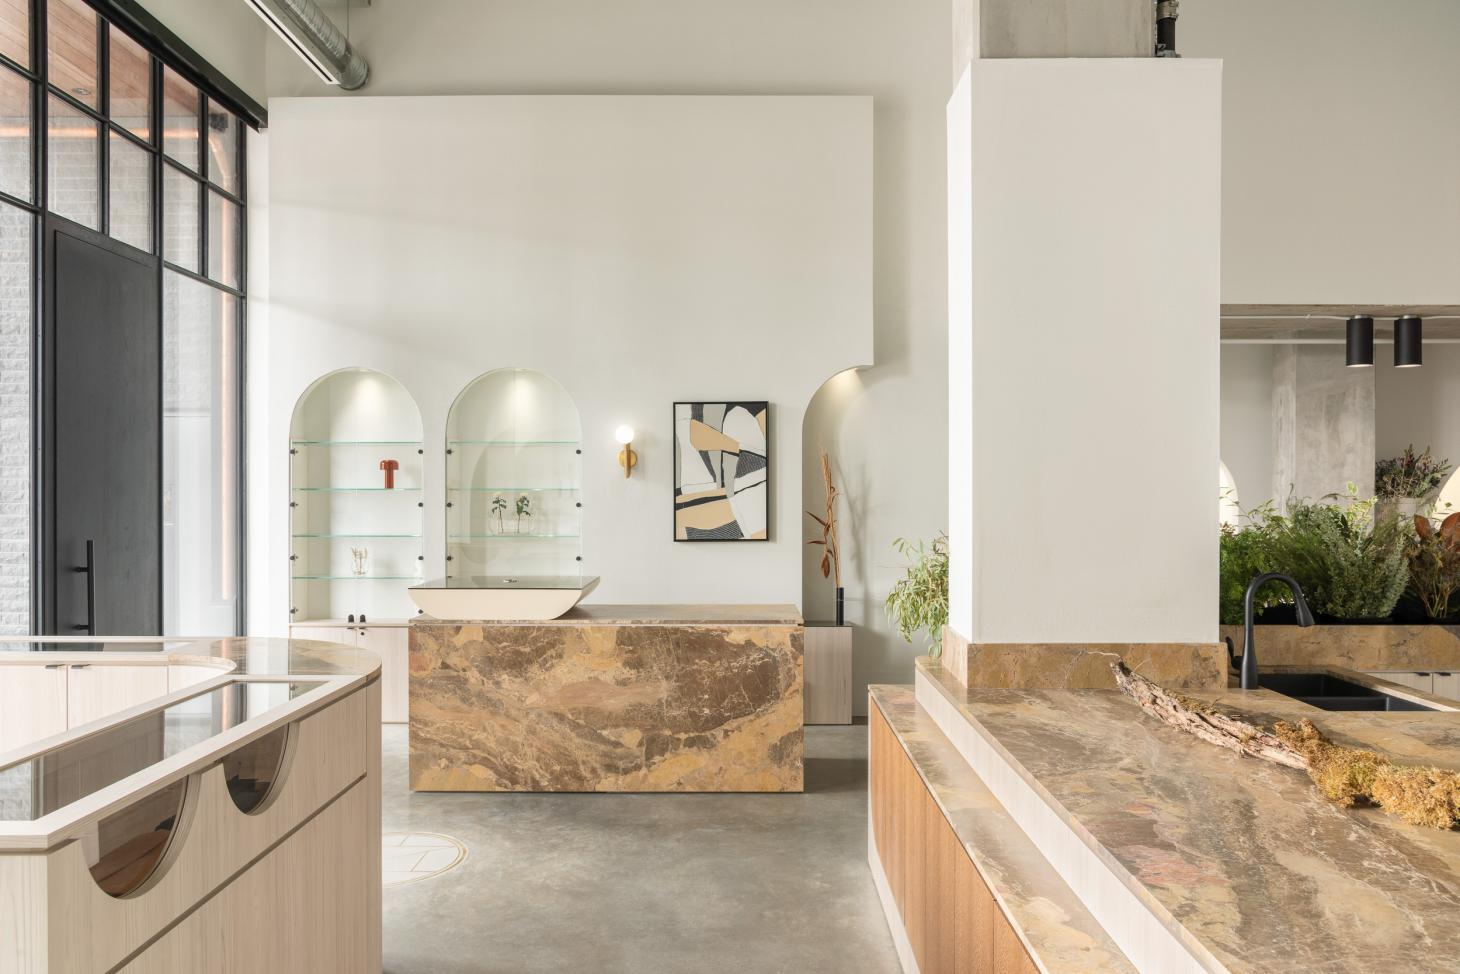 Cadine shop interior with concrete floor and white walls, furniture in granite and ash wood. Two alcoves with glass shelves are visible on the back wall